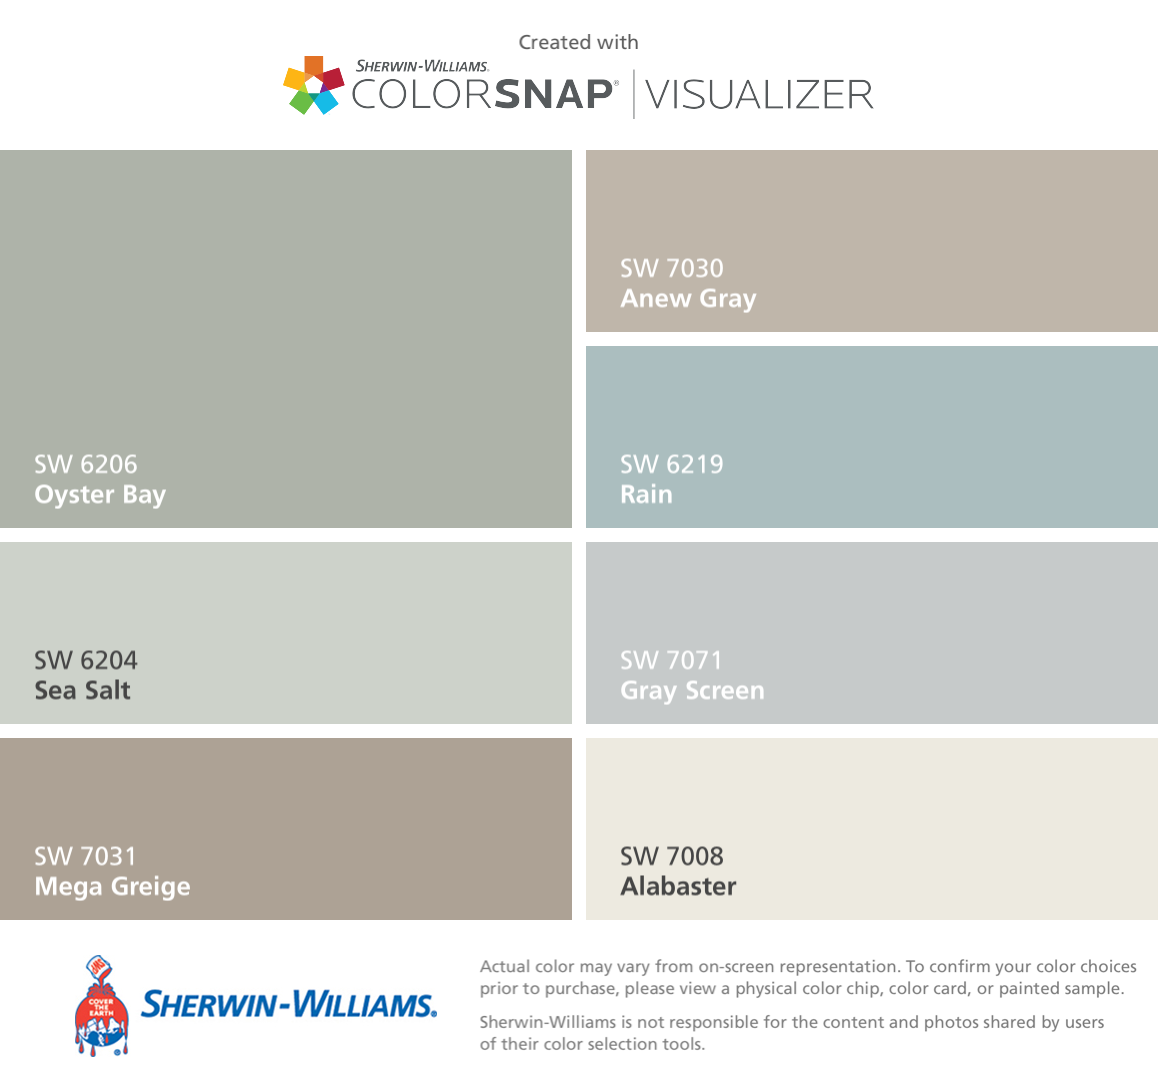 I Found These Colors With Colorsnap Visualizer For Iphone By Sherwin Williams Oyster Bay Sw